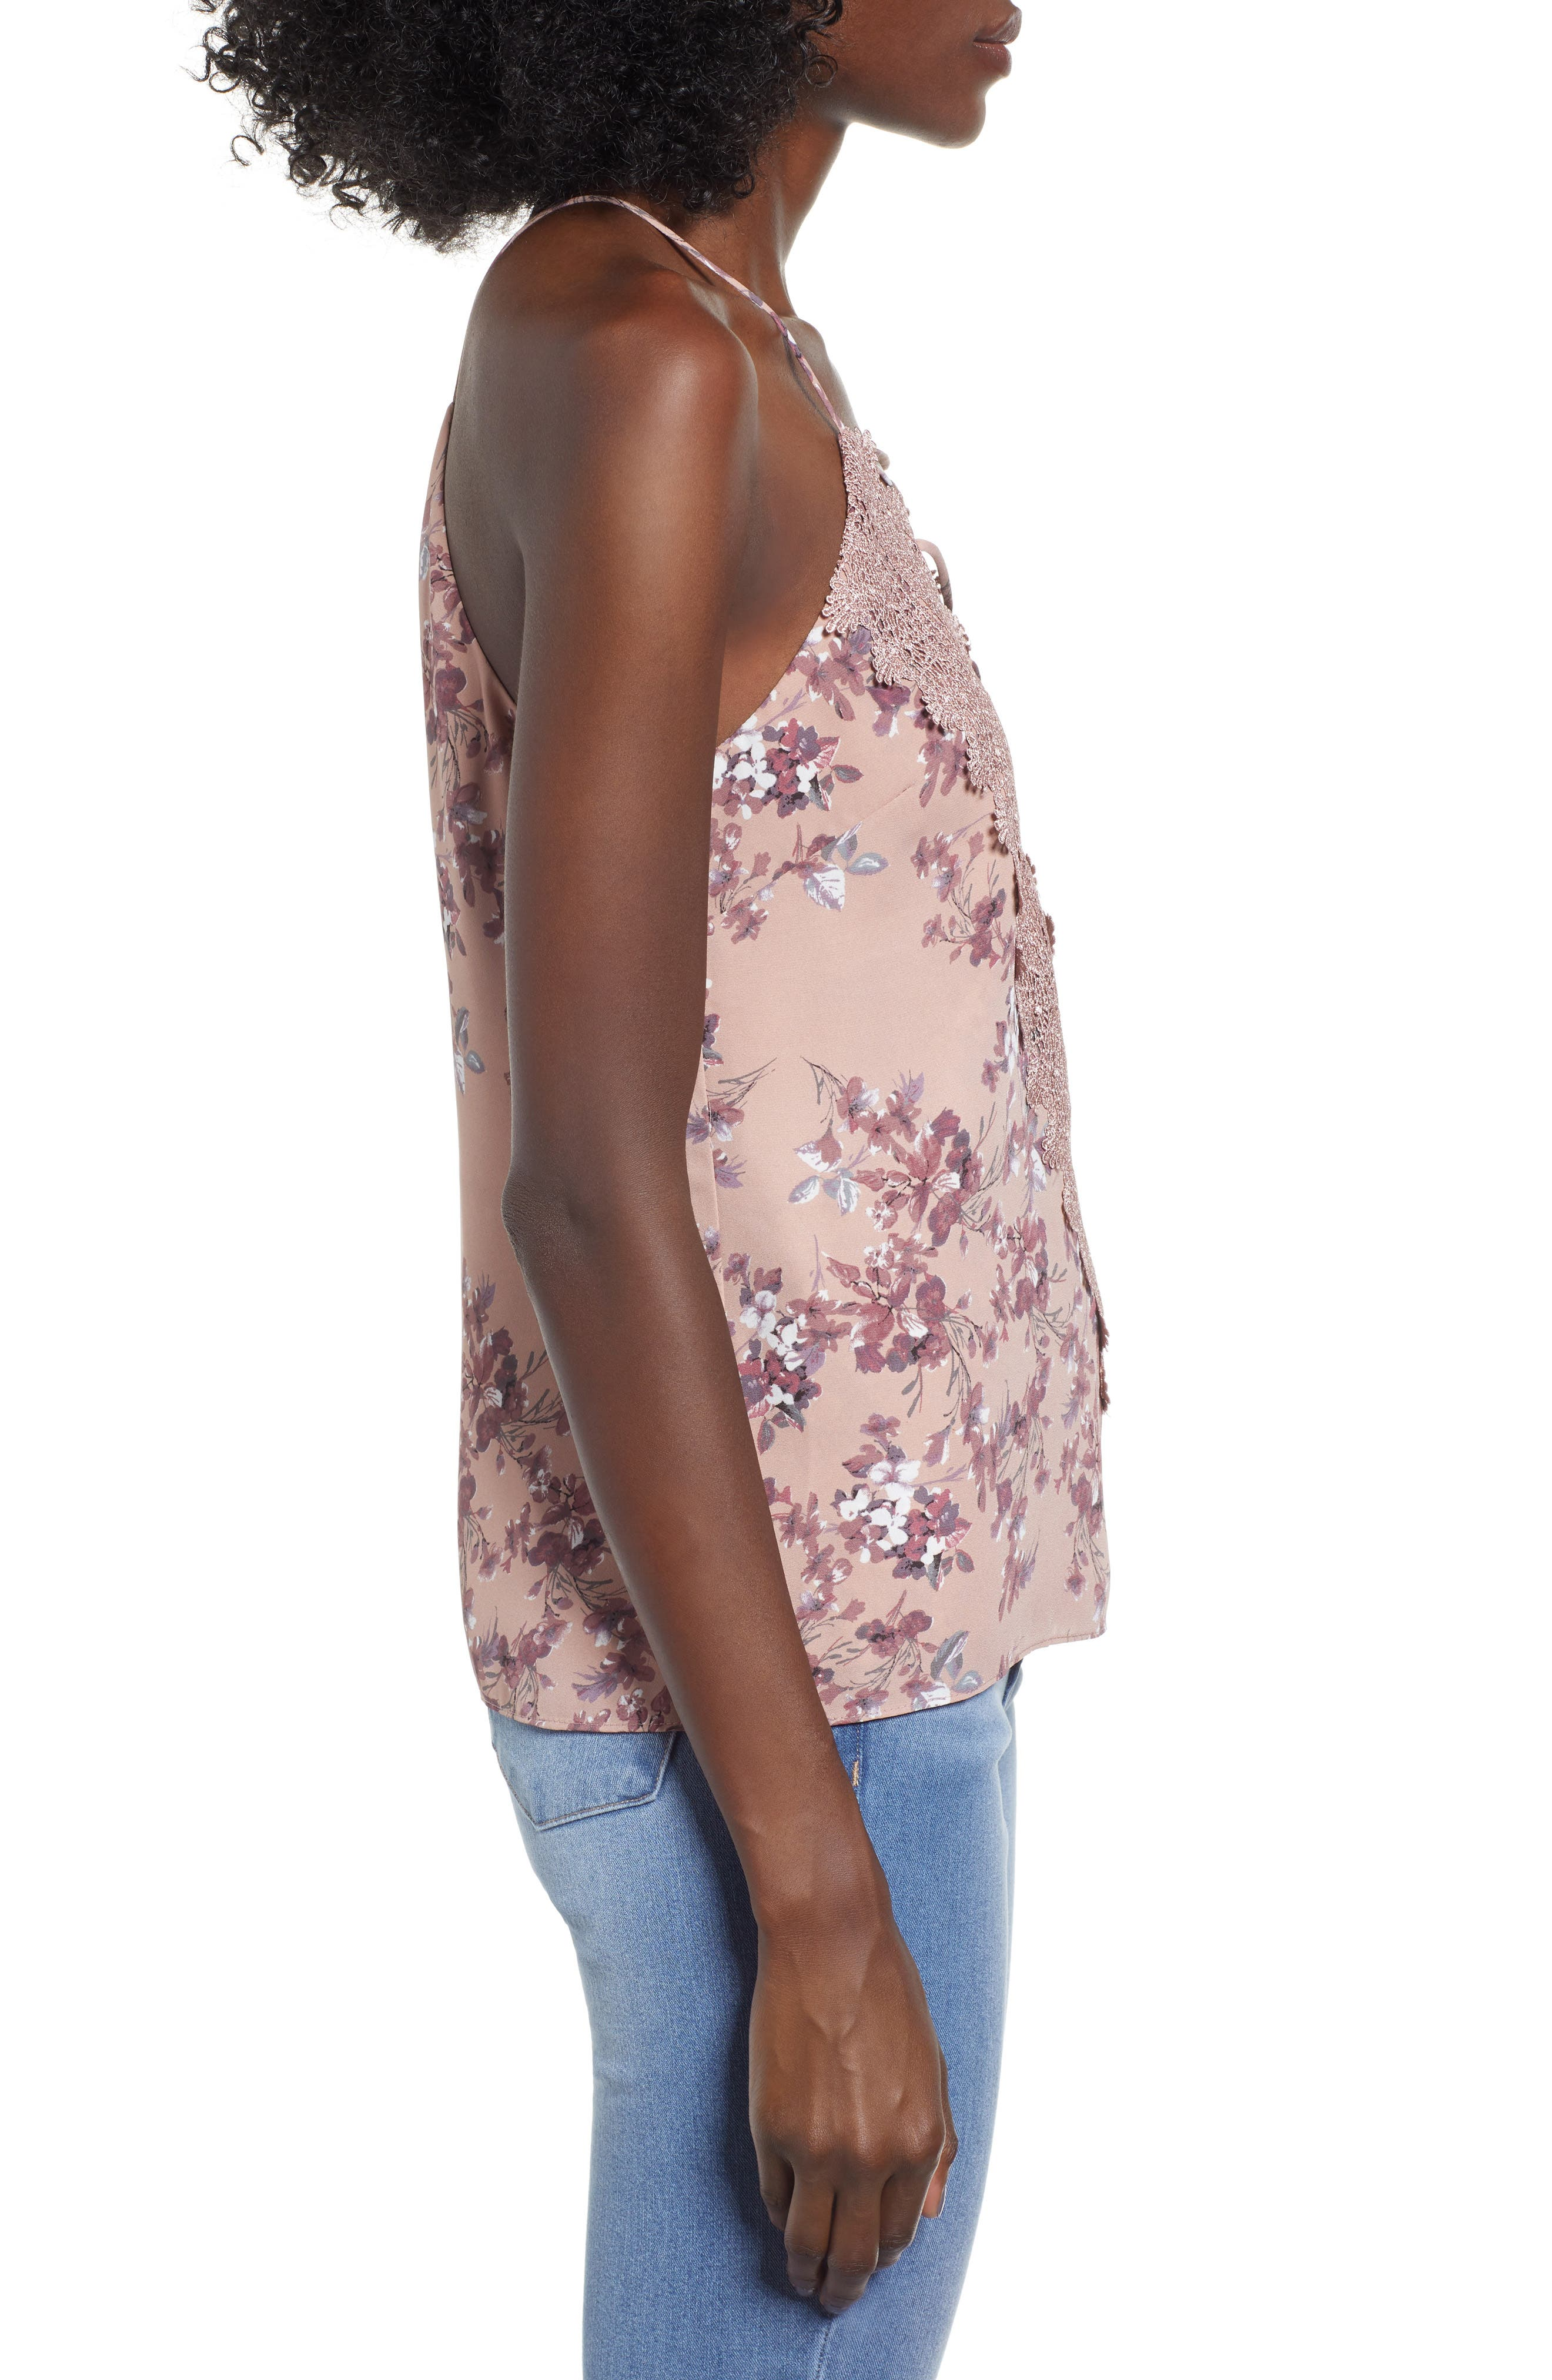 Posie Strappy Camisole,                             Alternate thumbnail 3, color,                             DUSTY MAUVE FLORAL